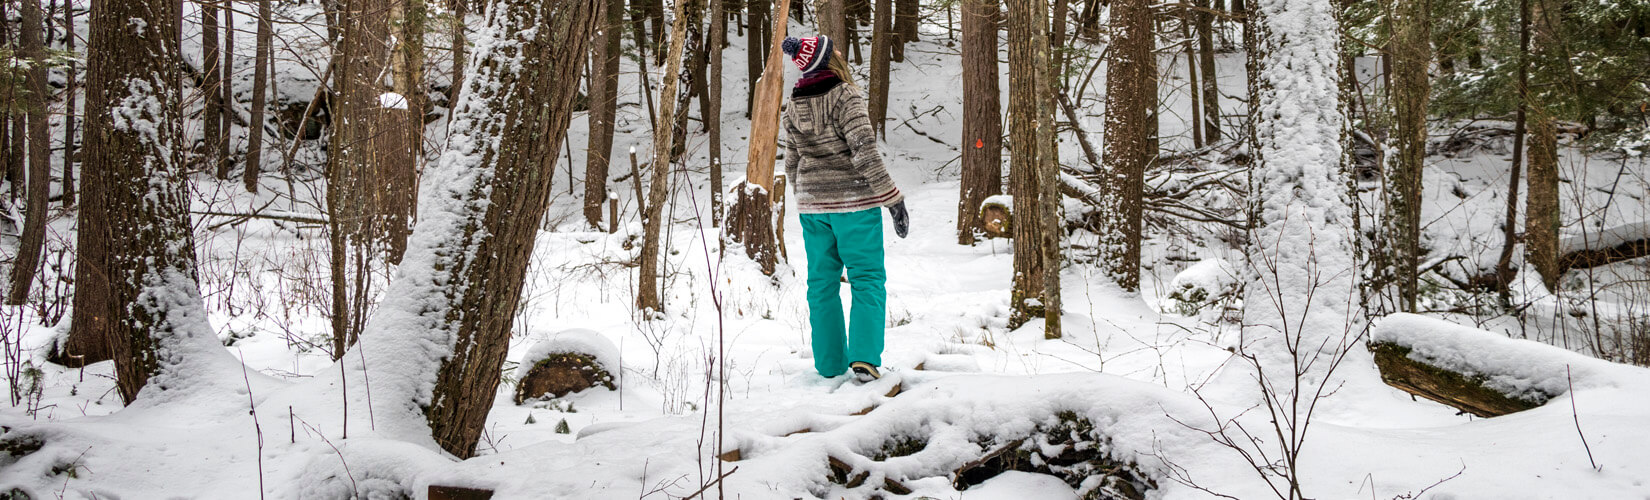 Winter Hiking For Beginners: Tips & Tricks For Hiking in the Snow :: I've Been Bit! Travel Blog